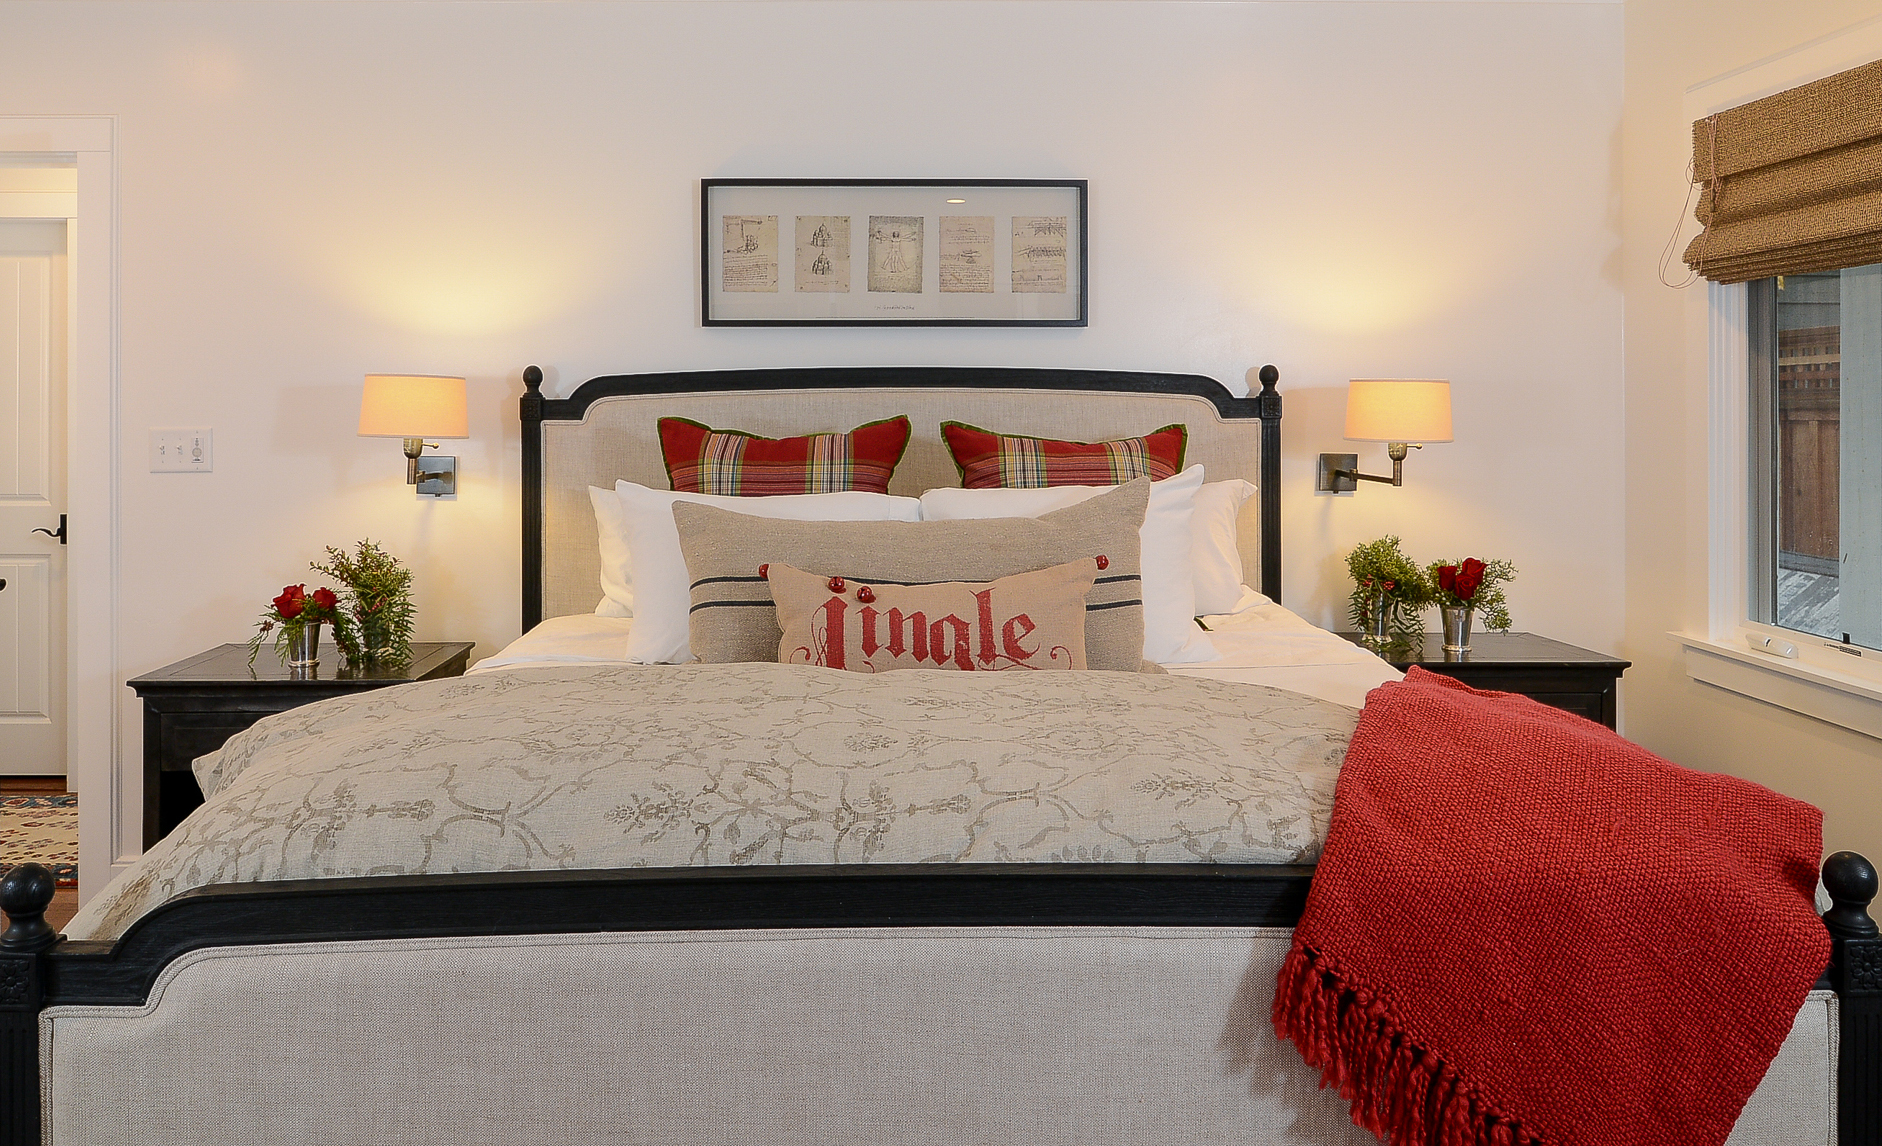 Holiday Bedroom Decorating Ideas Part - 25: Guest Bedroom